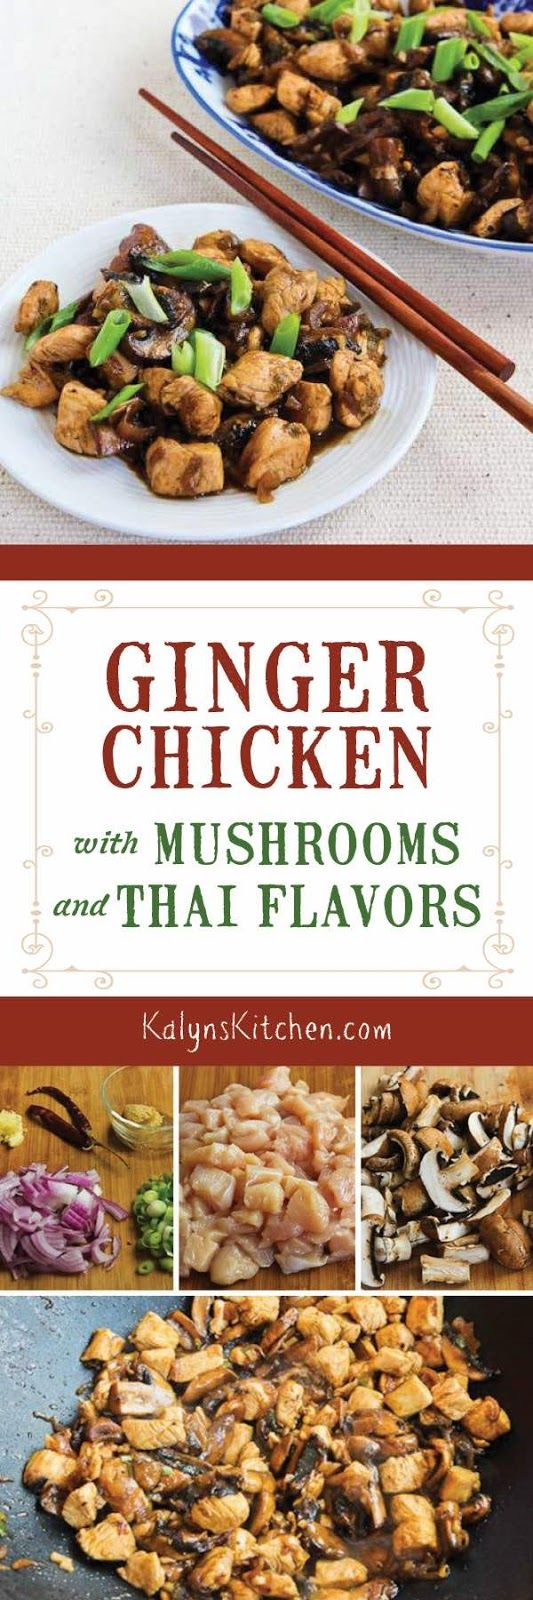 Mark Bittman's Ginger Chicken with Mushrooms and Thai Flavors is a chicken stir-fry that's easy, tasty, and healthy! [from KalynsKitchen.com]